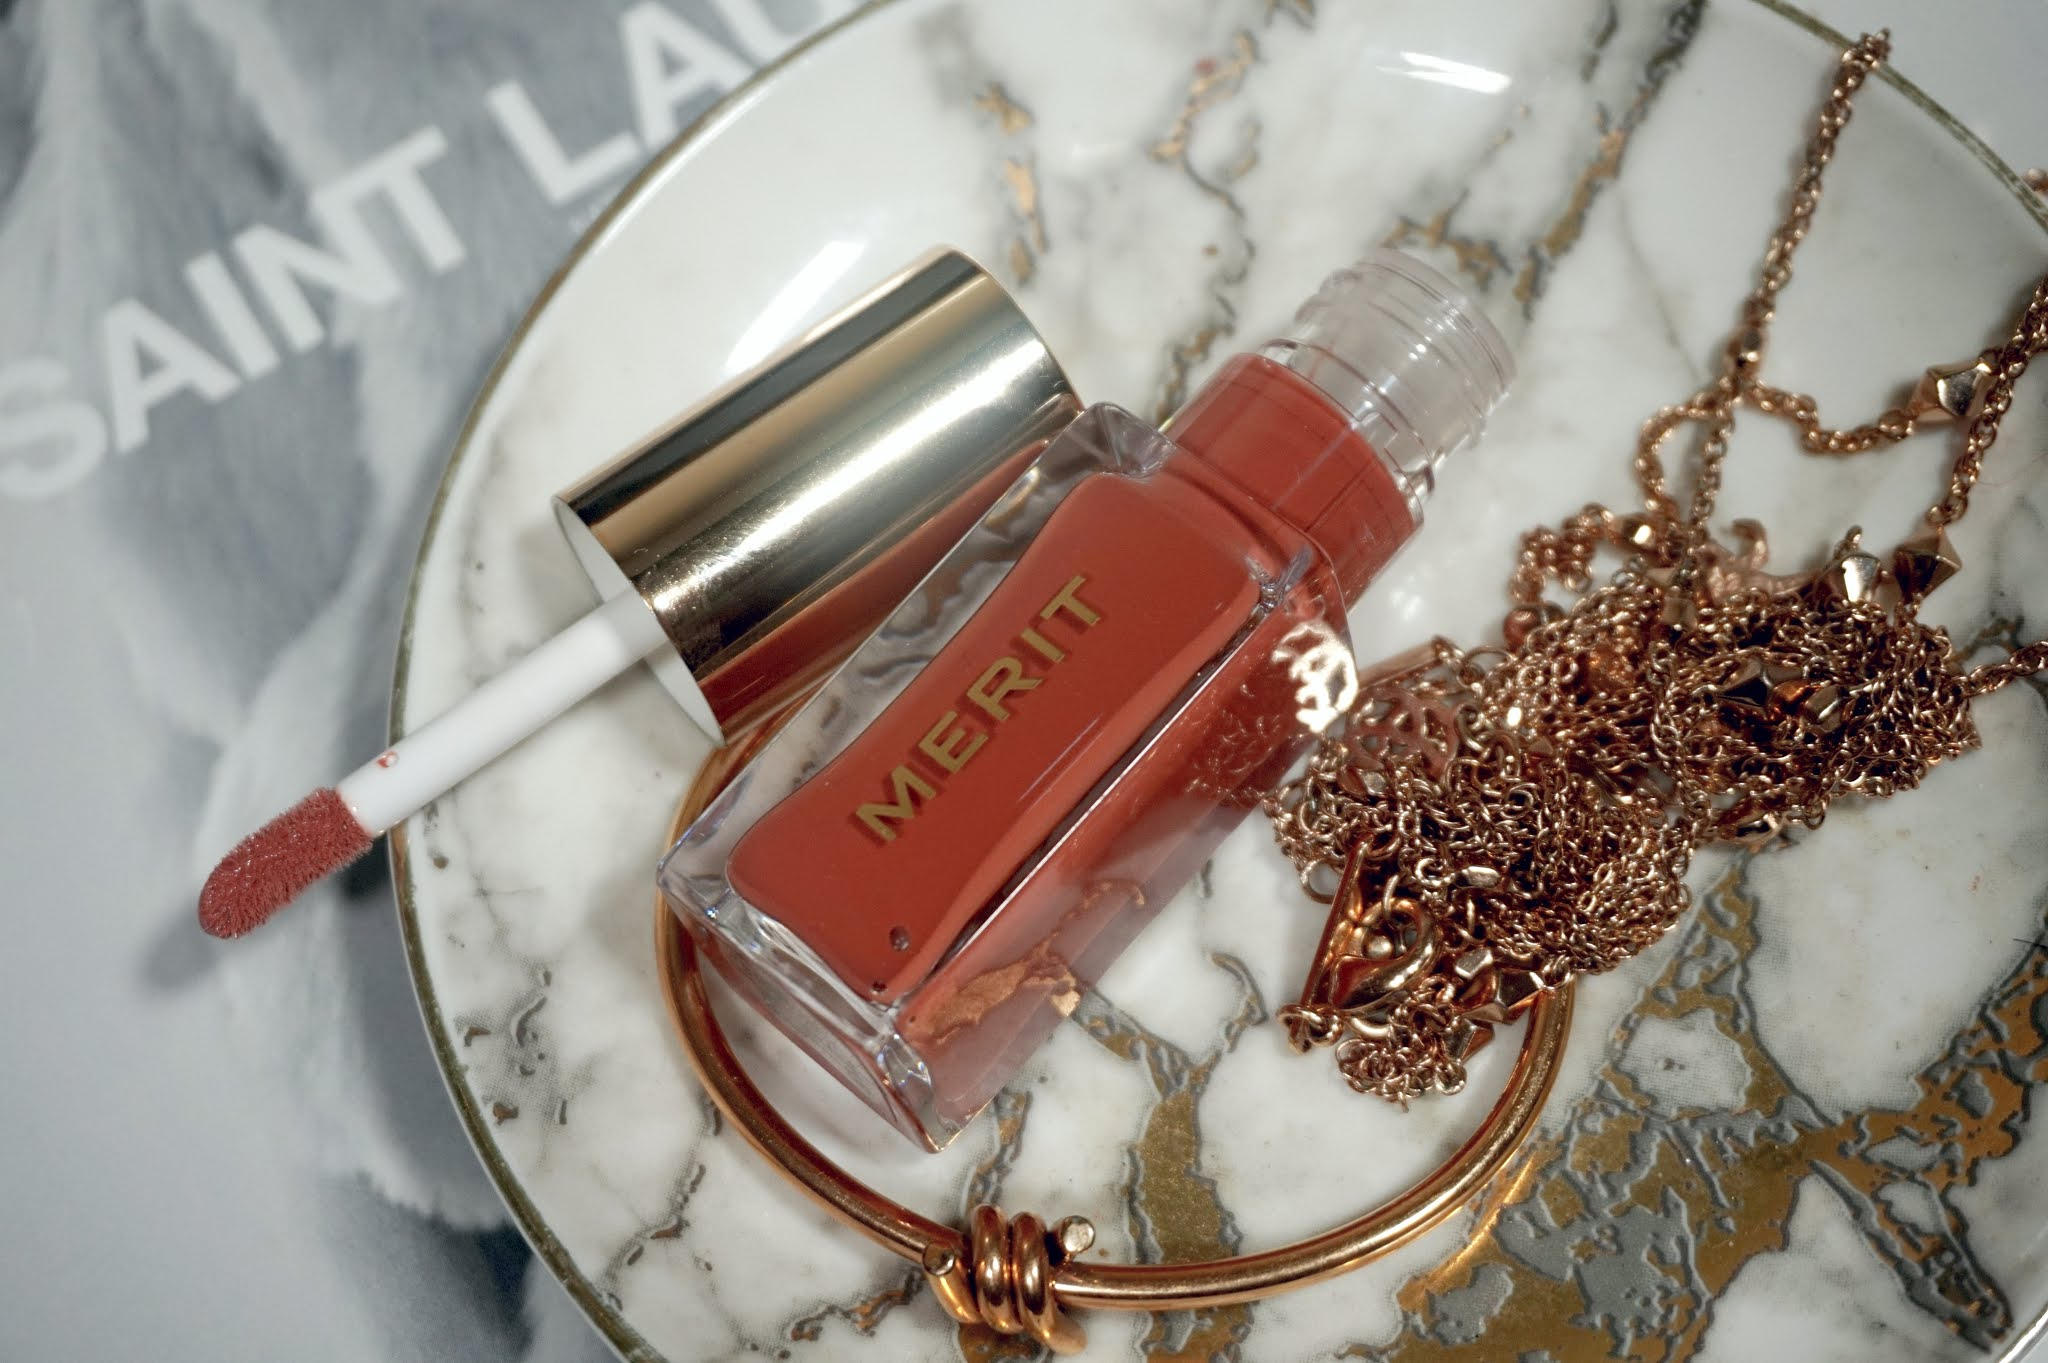 MERIT Beauty - Full Brand Review and Swatches